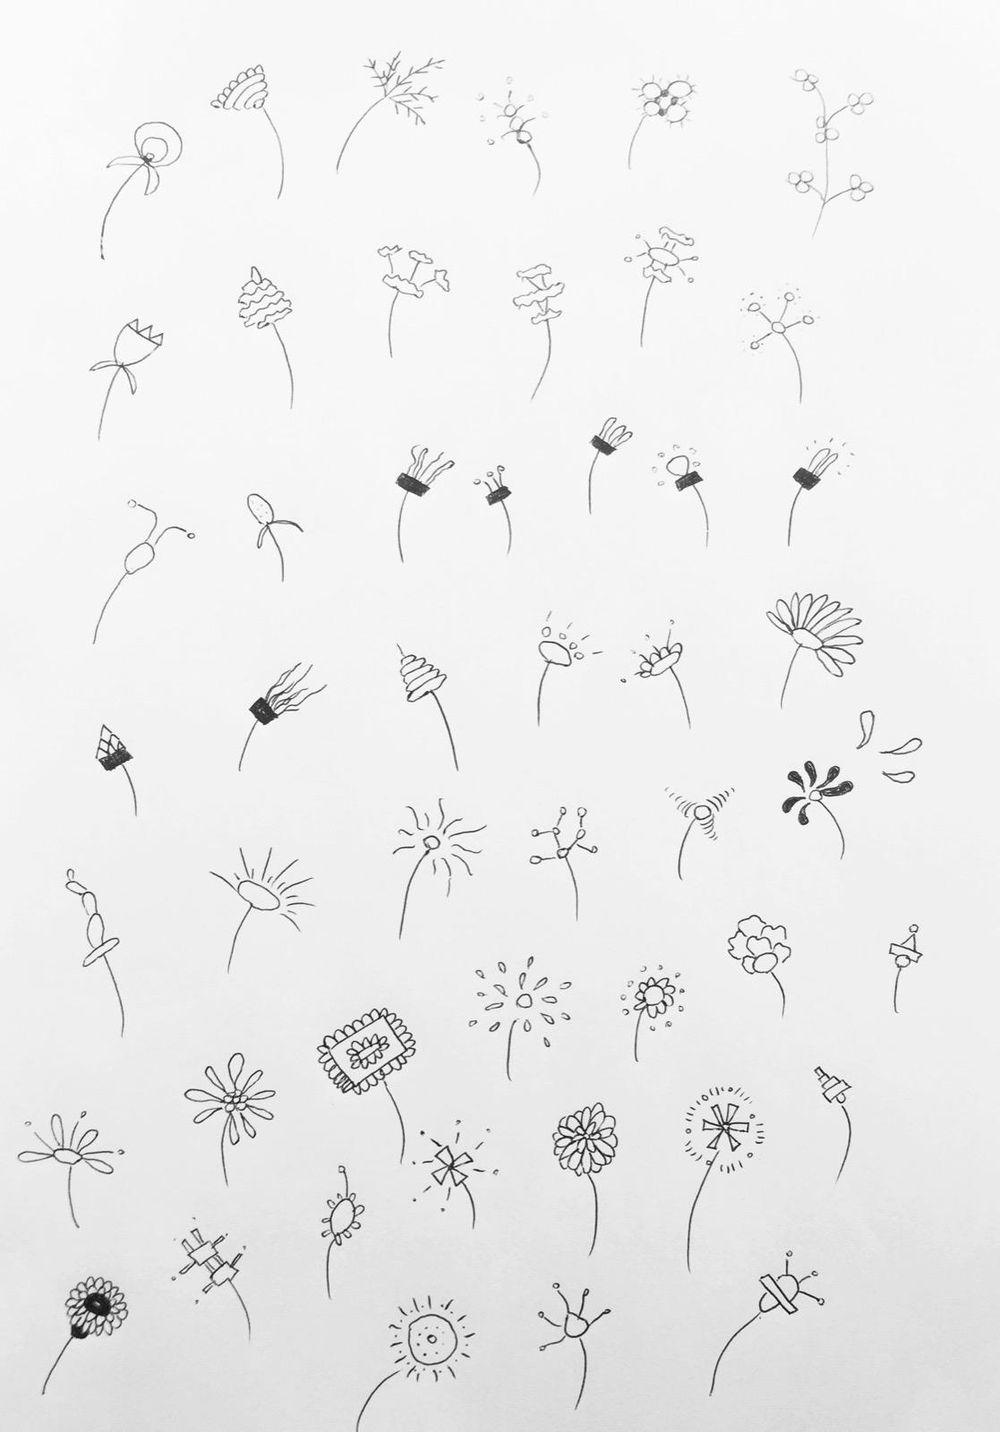 Super fun flower drawing project - image 1 - student project